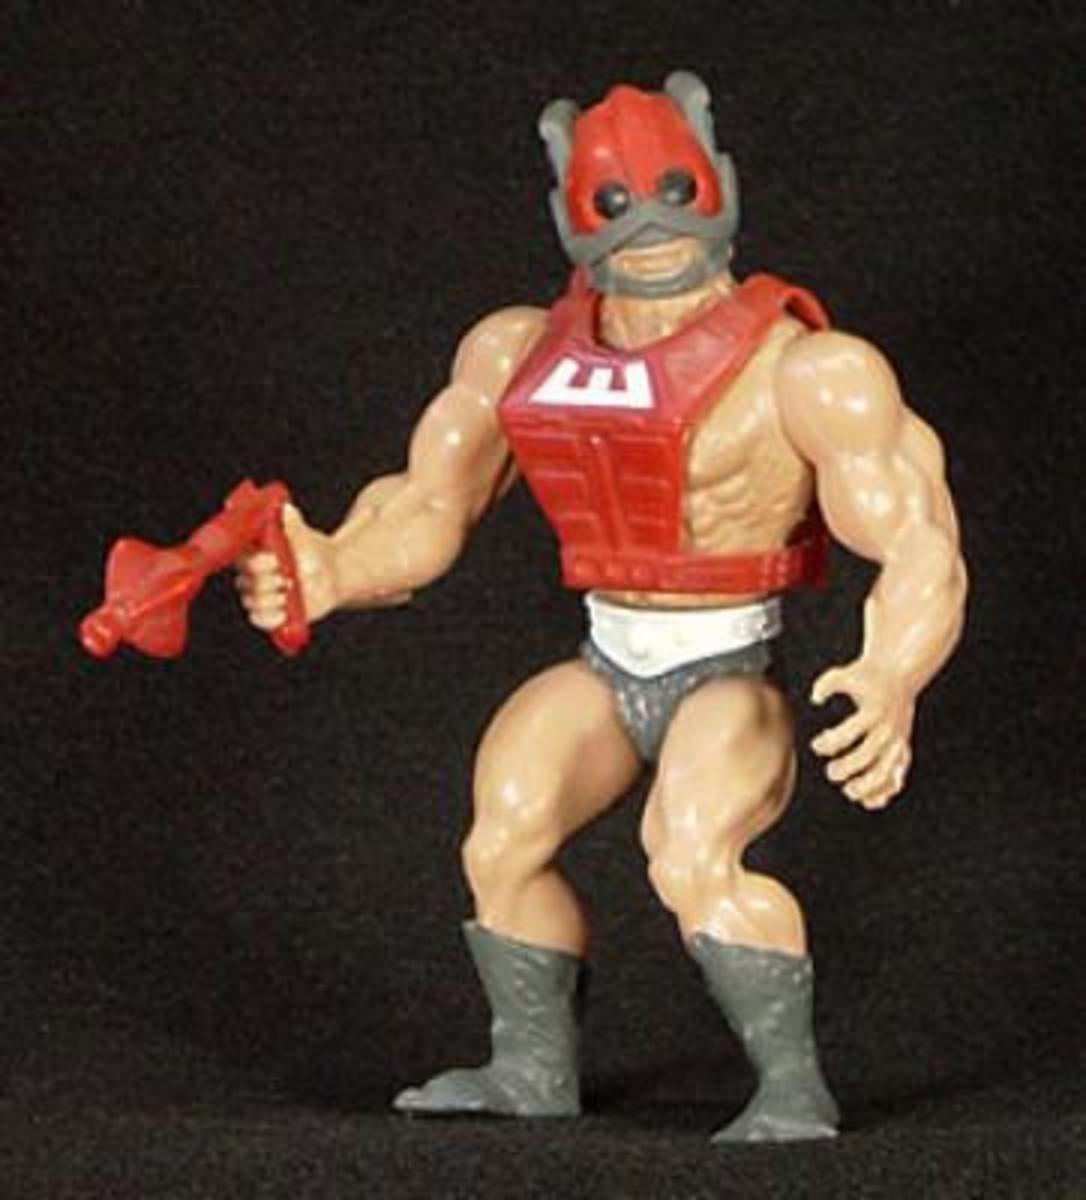 Very nice-looking figure that added a cool Buck Rogers feel to the already awesome world of He-Man.